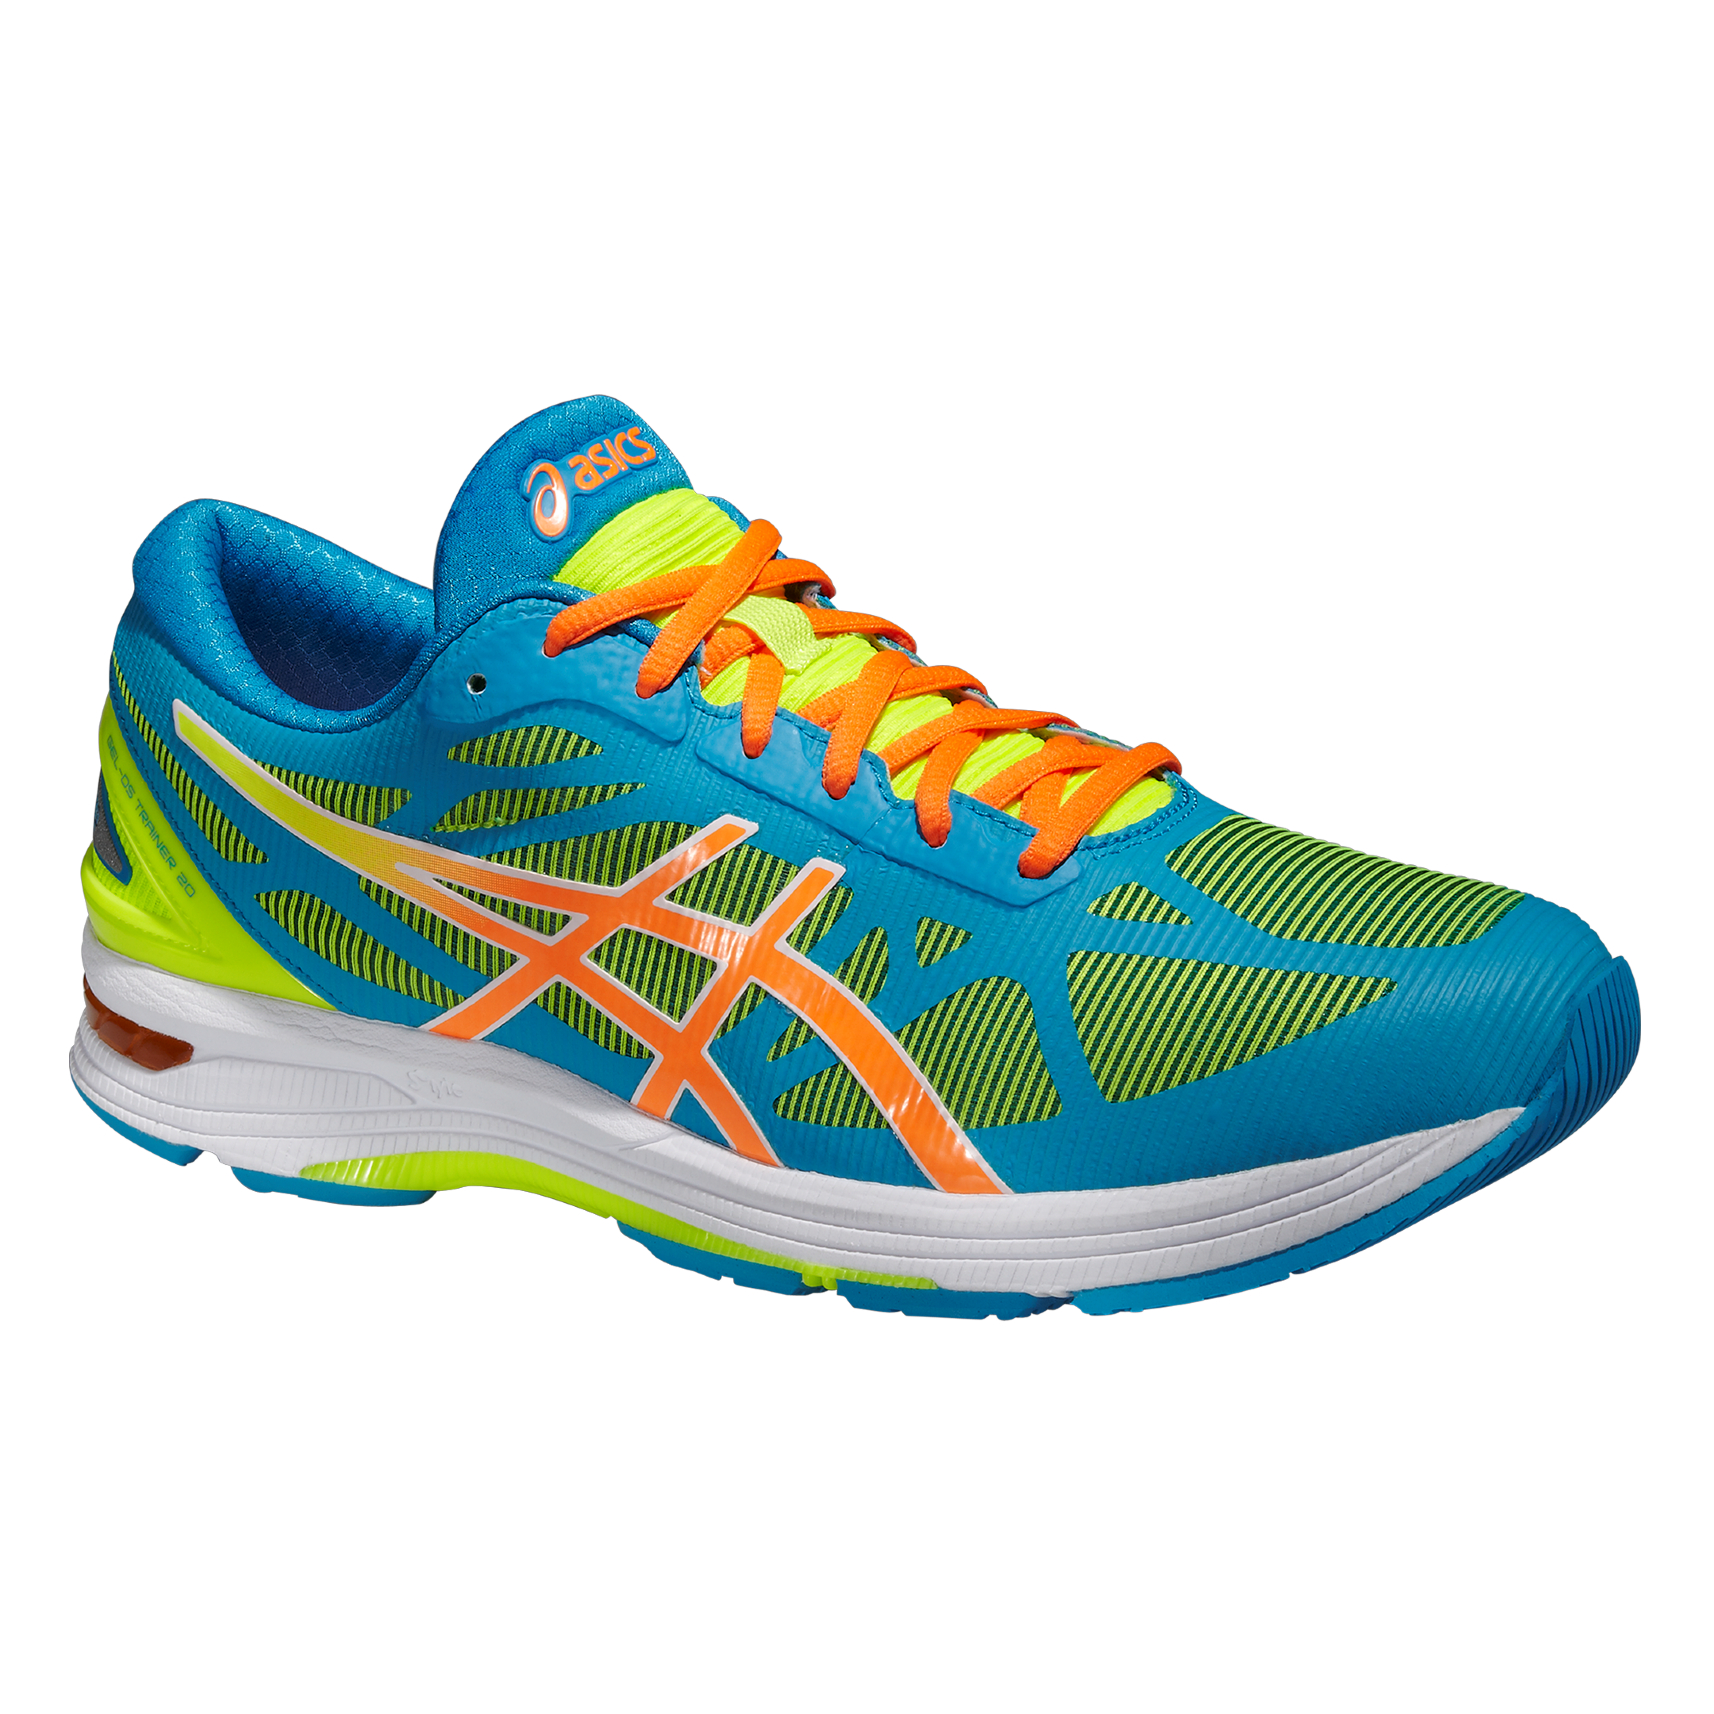 Asics Gel Trainer 20 boutique